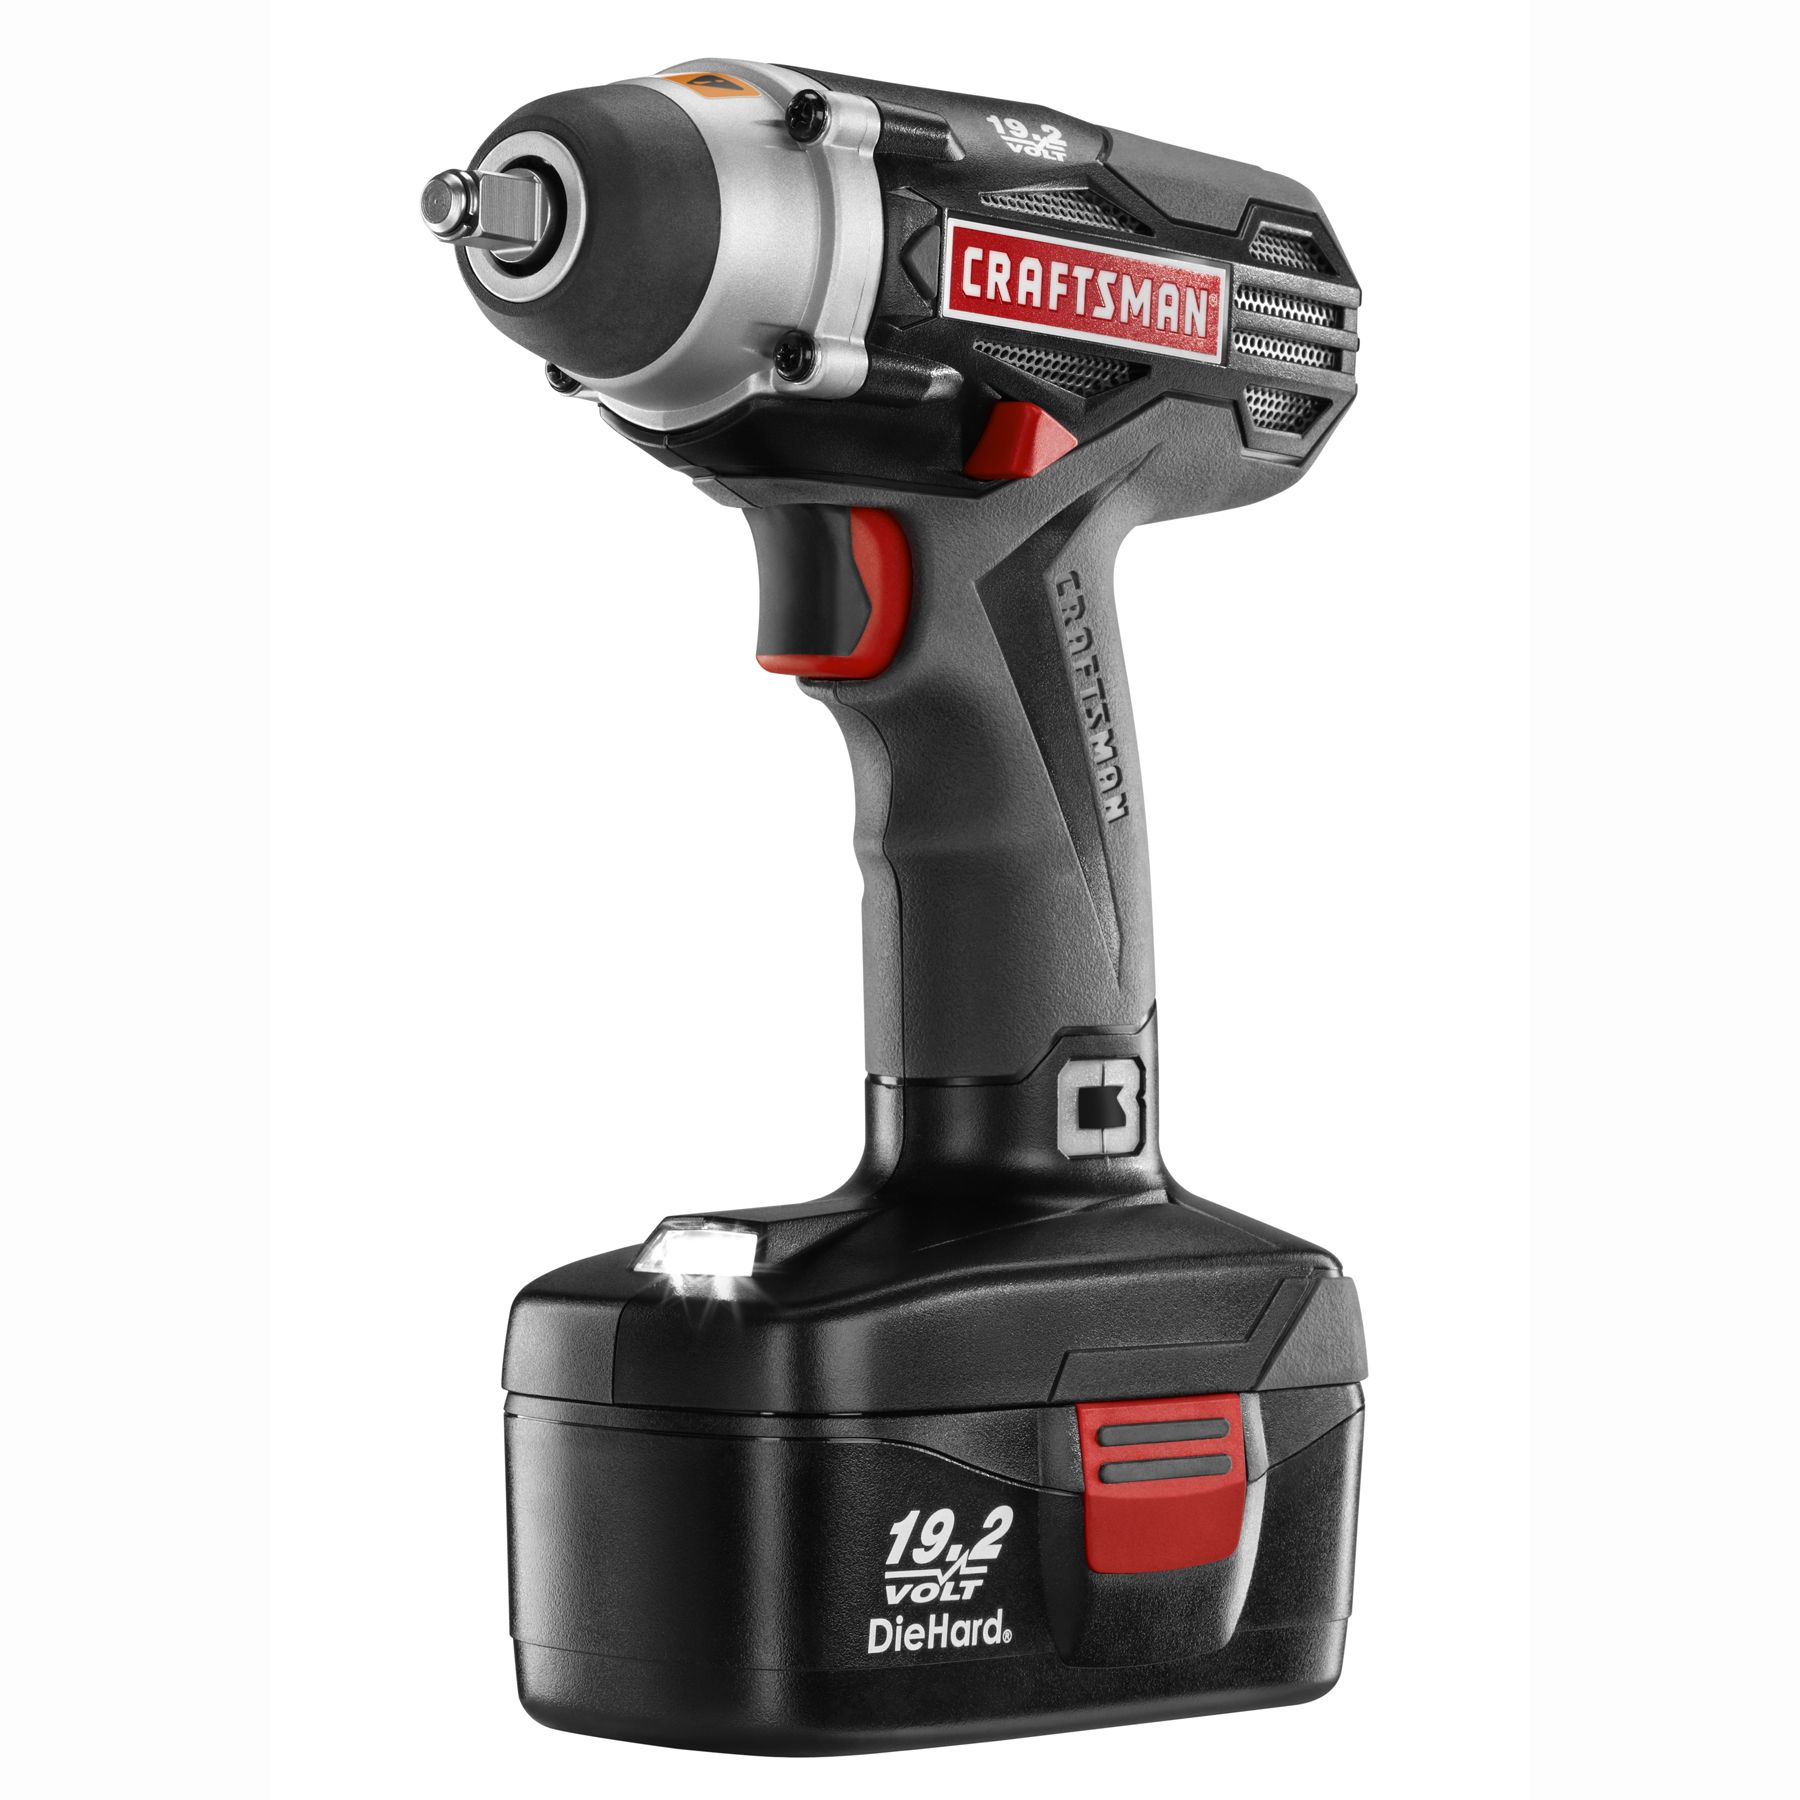 Craftsman C3 3/8-in. Impact Wrench